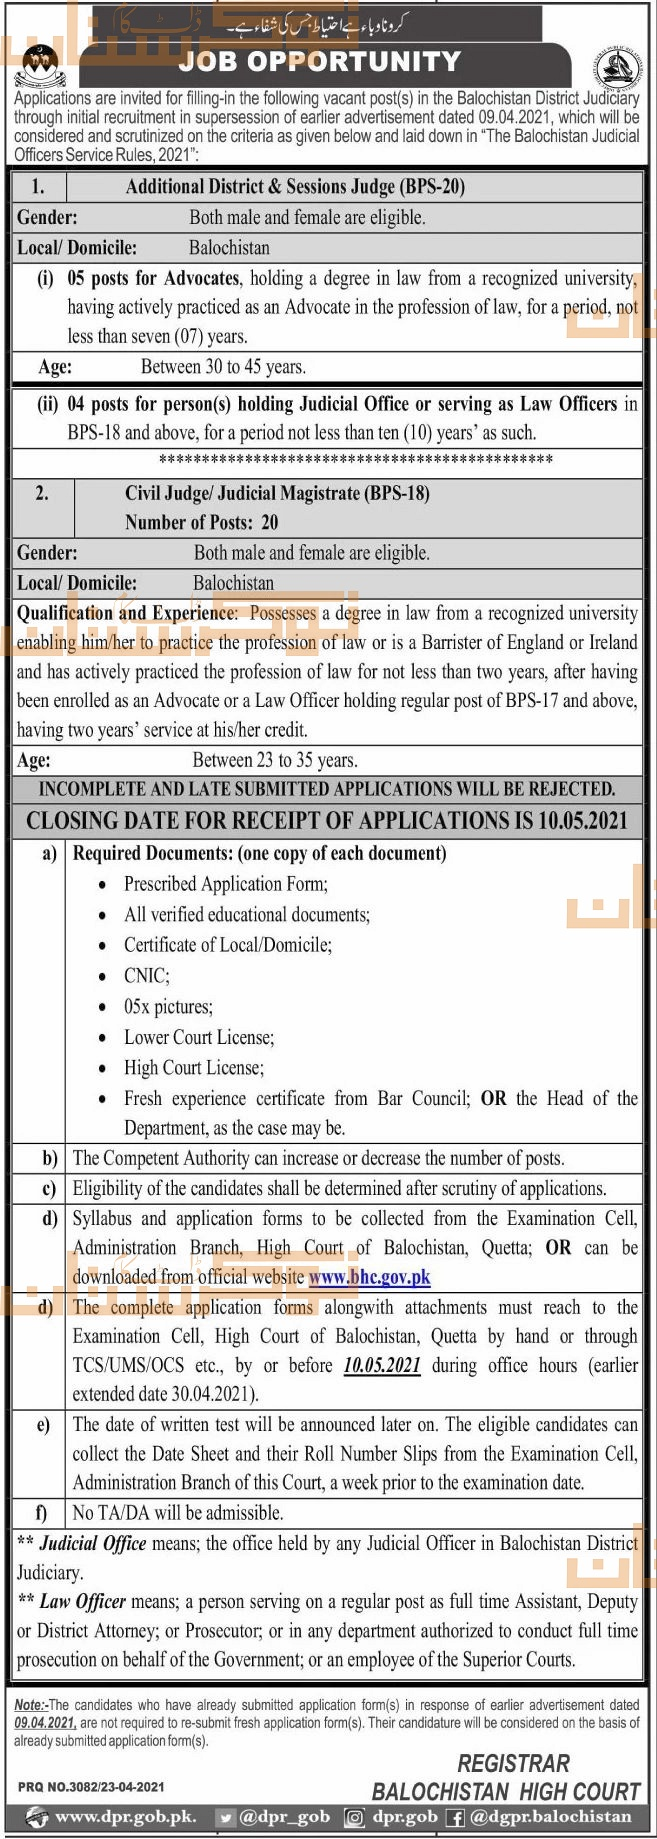 government,balochistan district judiciary,additional district judge, civil judge,latest jobs,last date,requirements,application form,how to apply, jobs 2021,